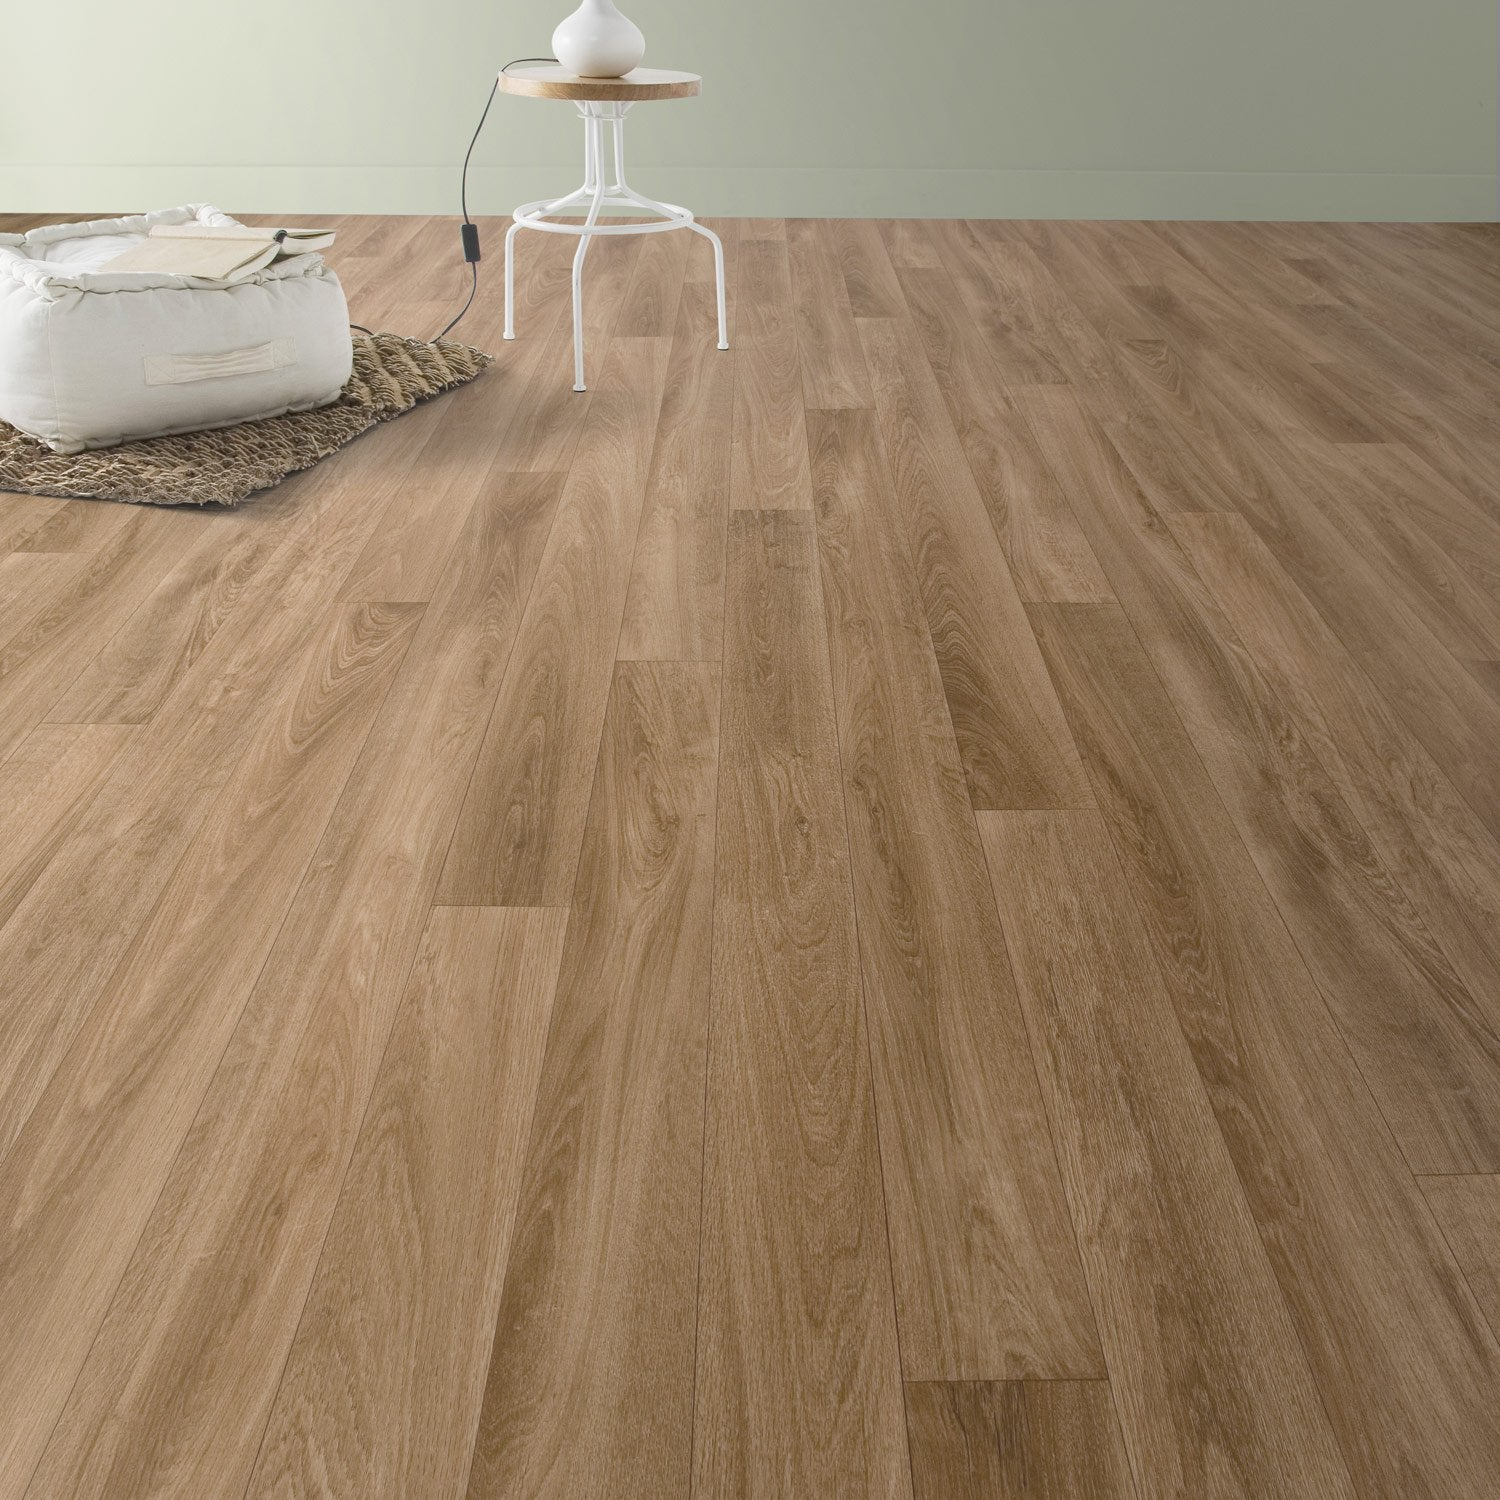 Sol pvc nature oak aerotex l 4 m leroy merlin for Sol pvc chambre